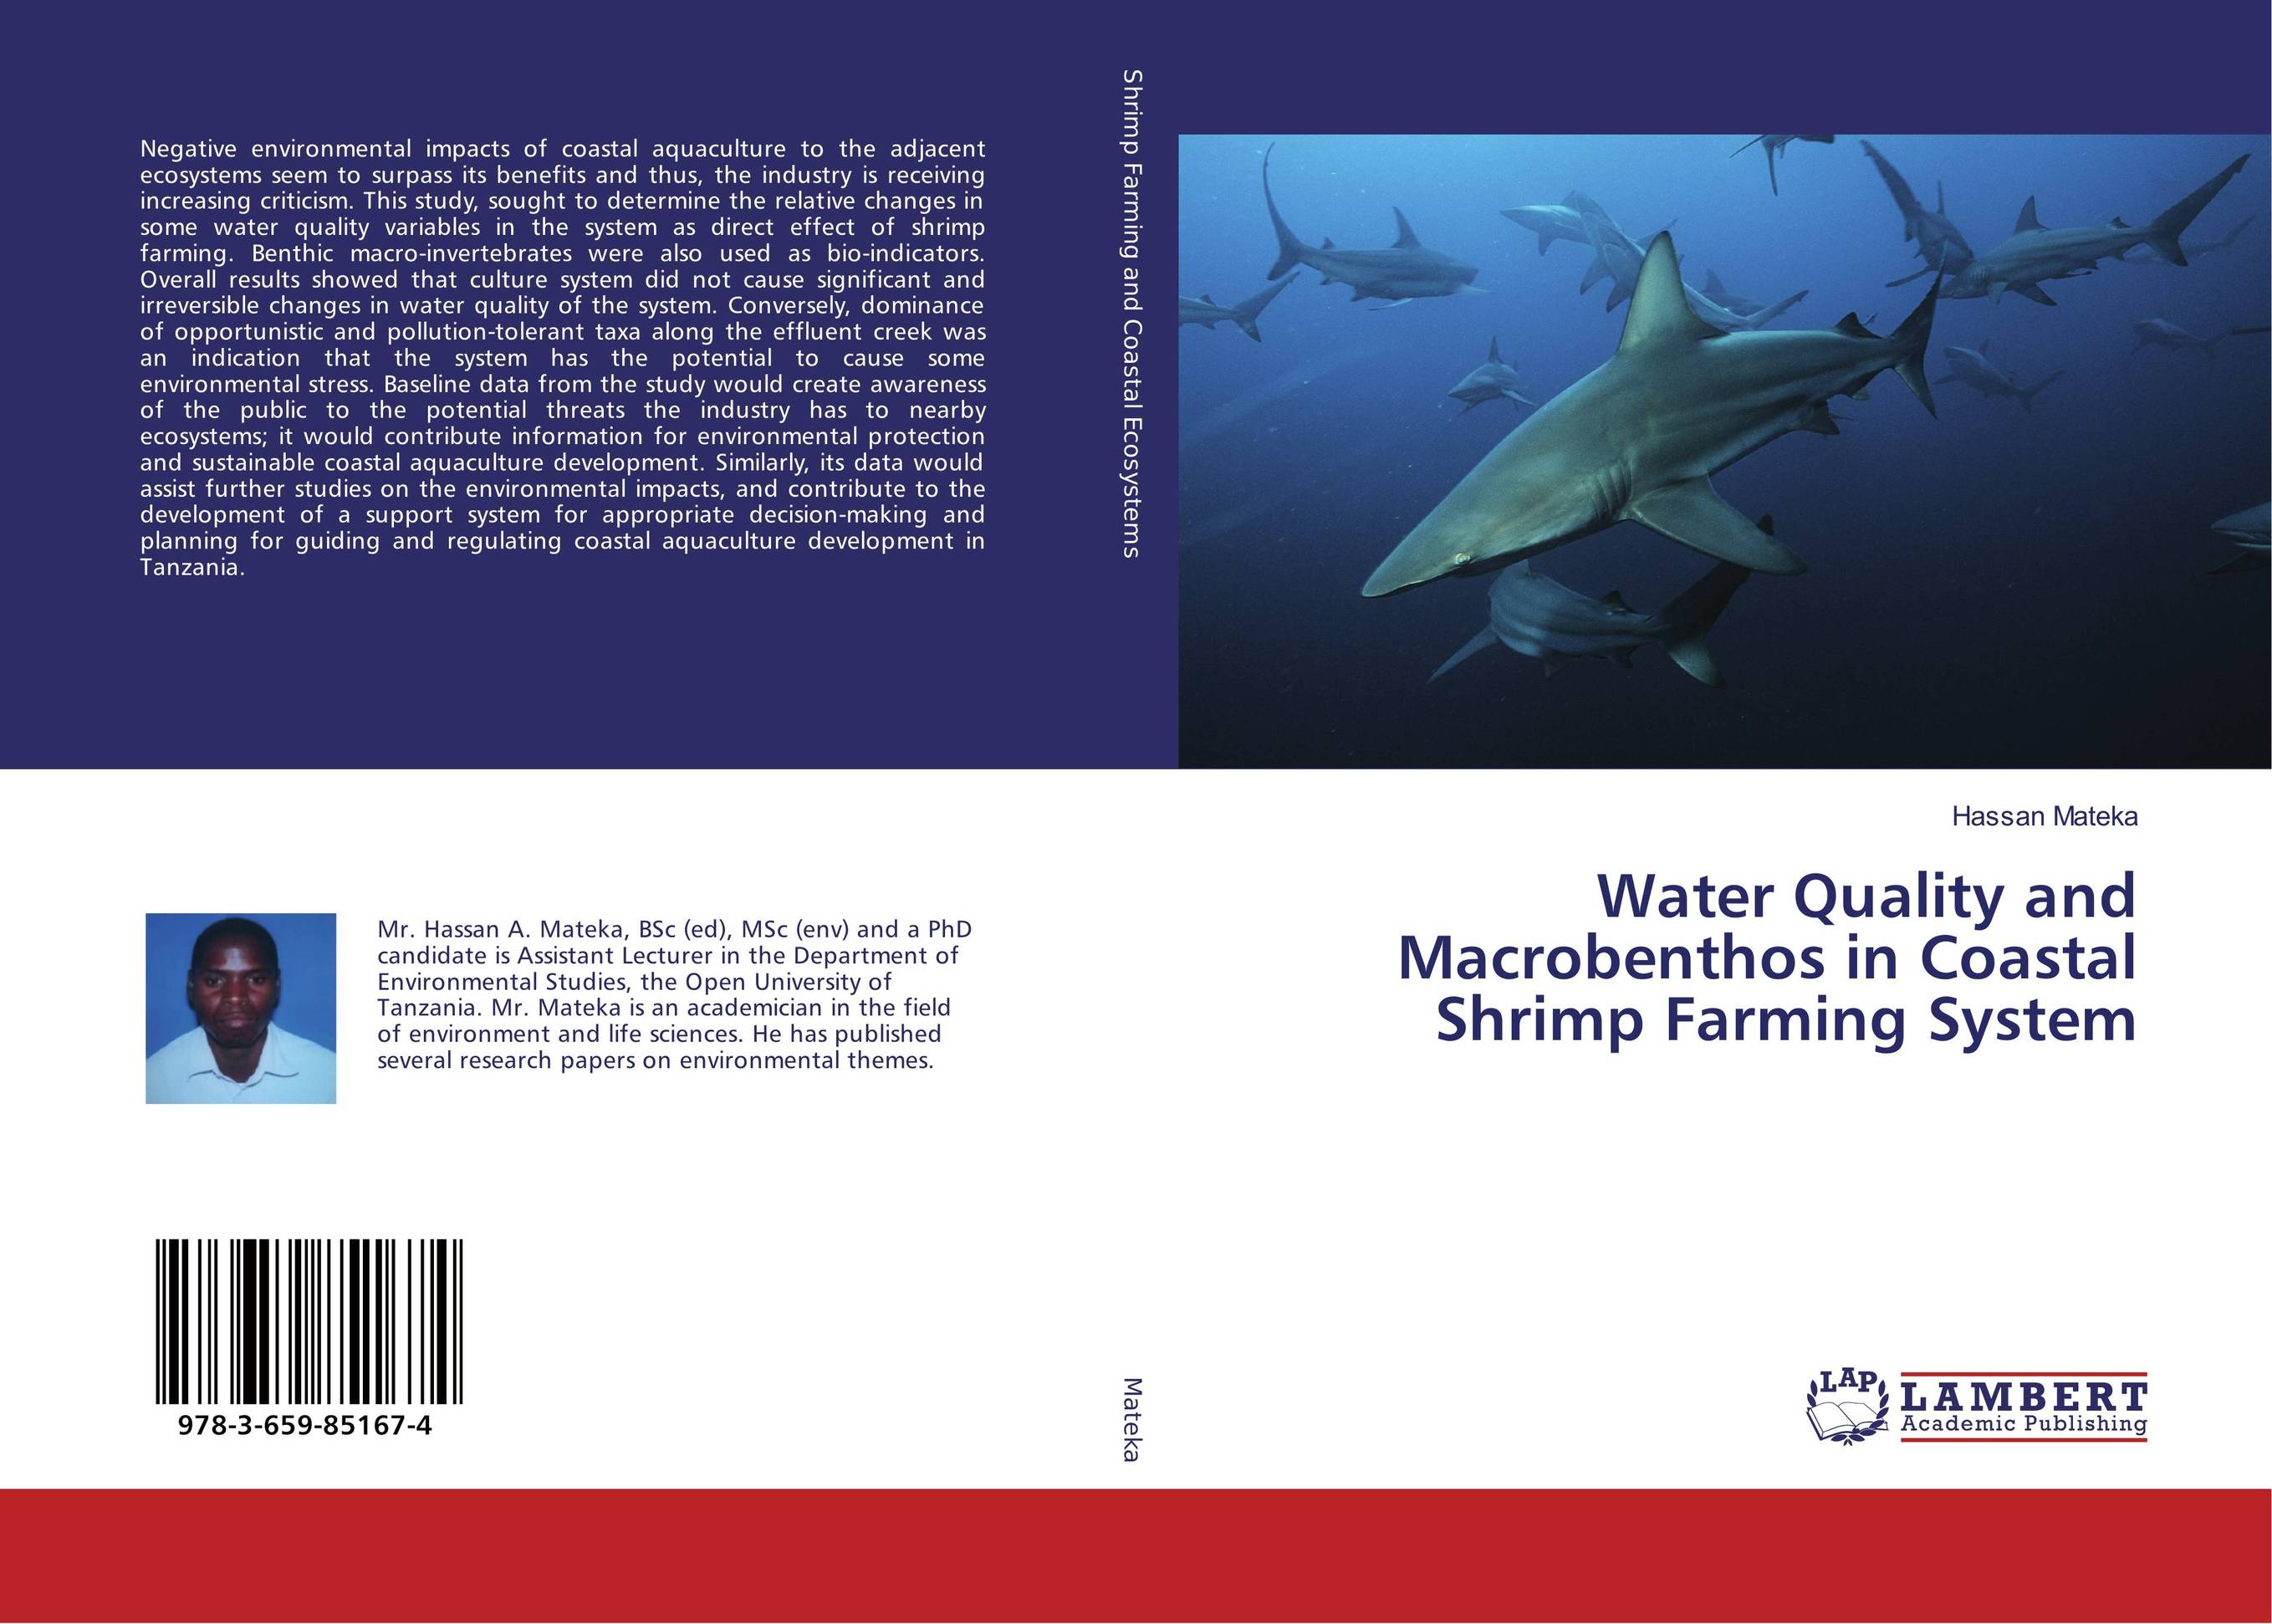 Water Quality and Macrobenthos in Coastal Shrimp Farming System bride of the water god v 3